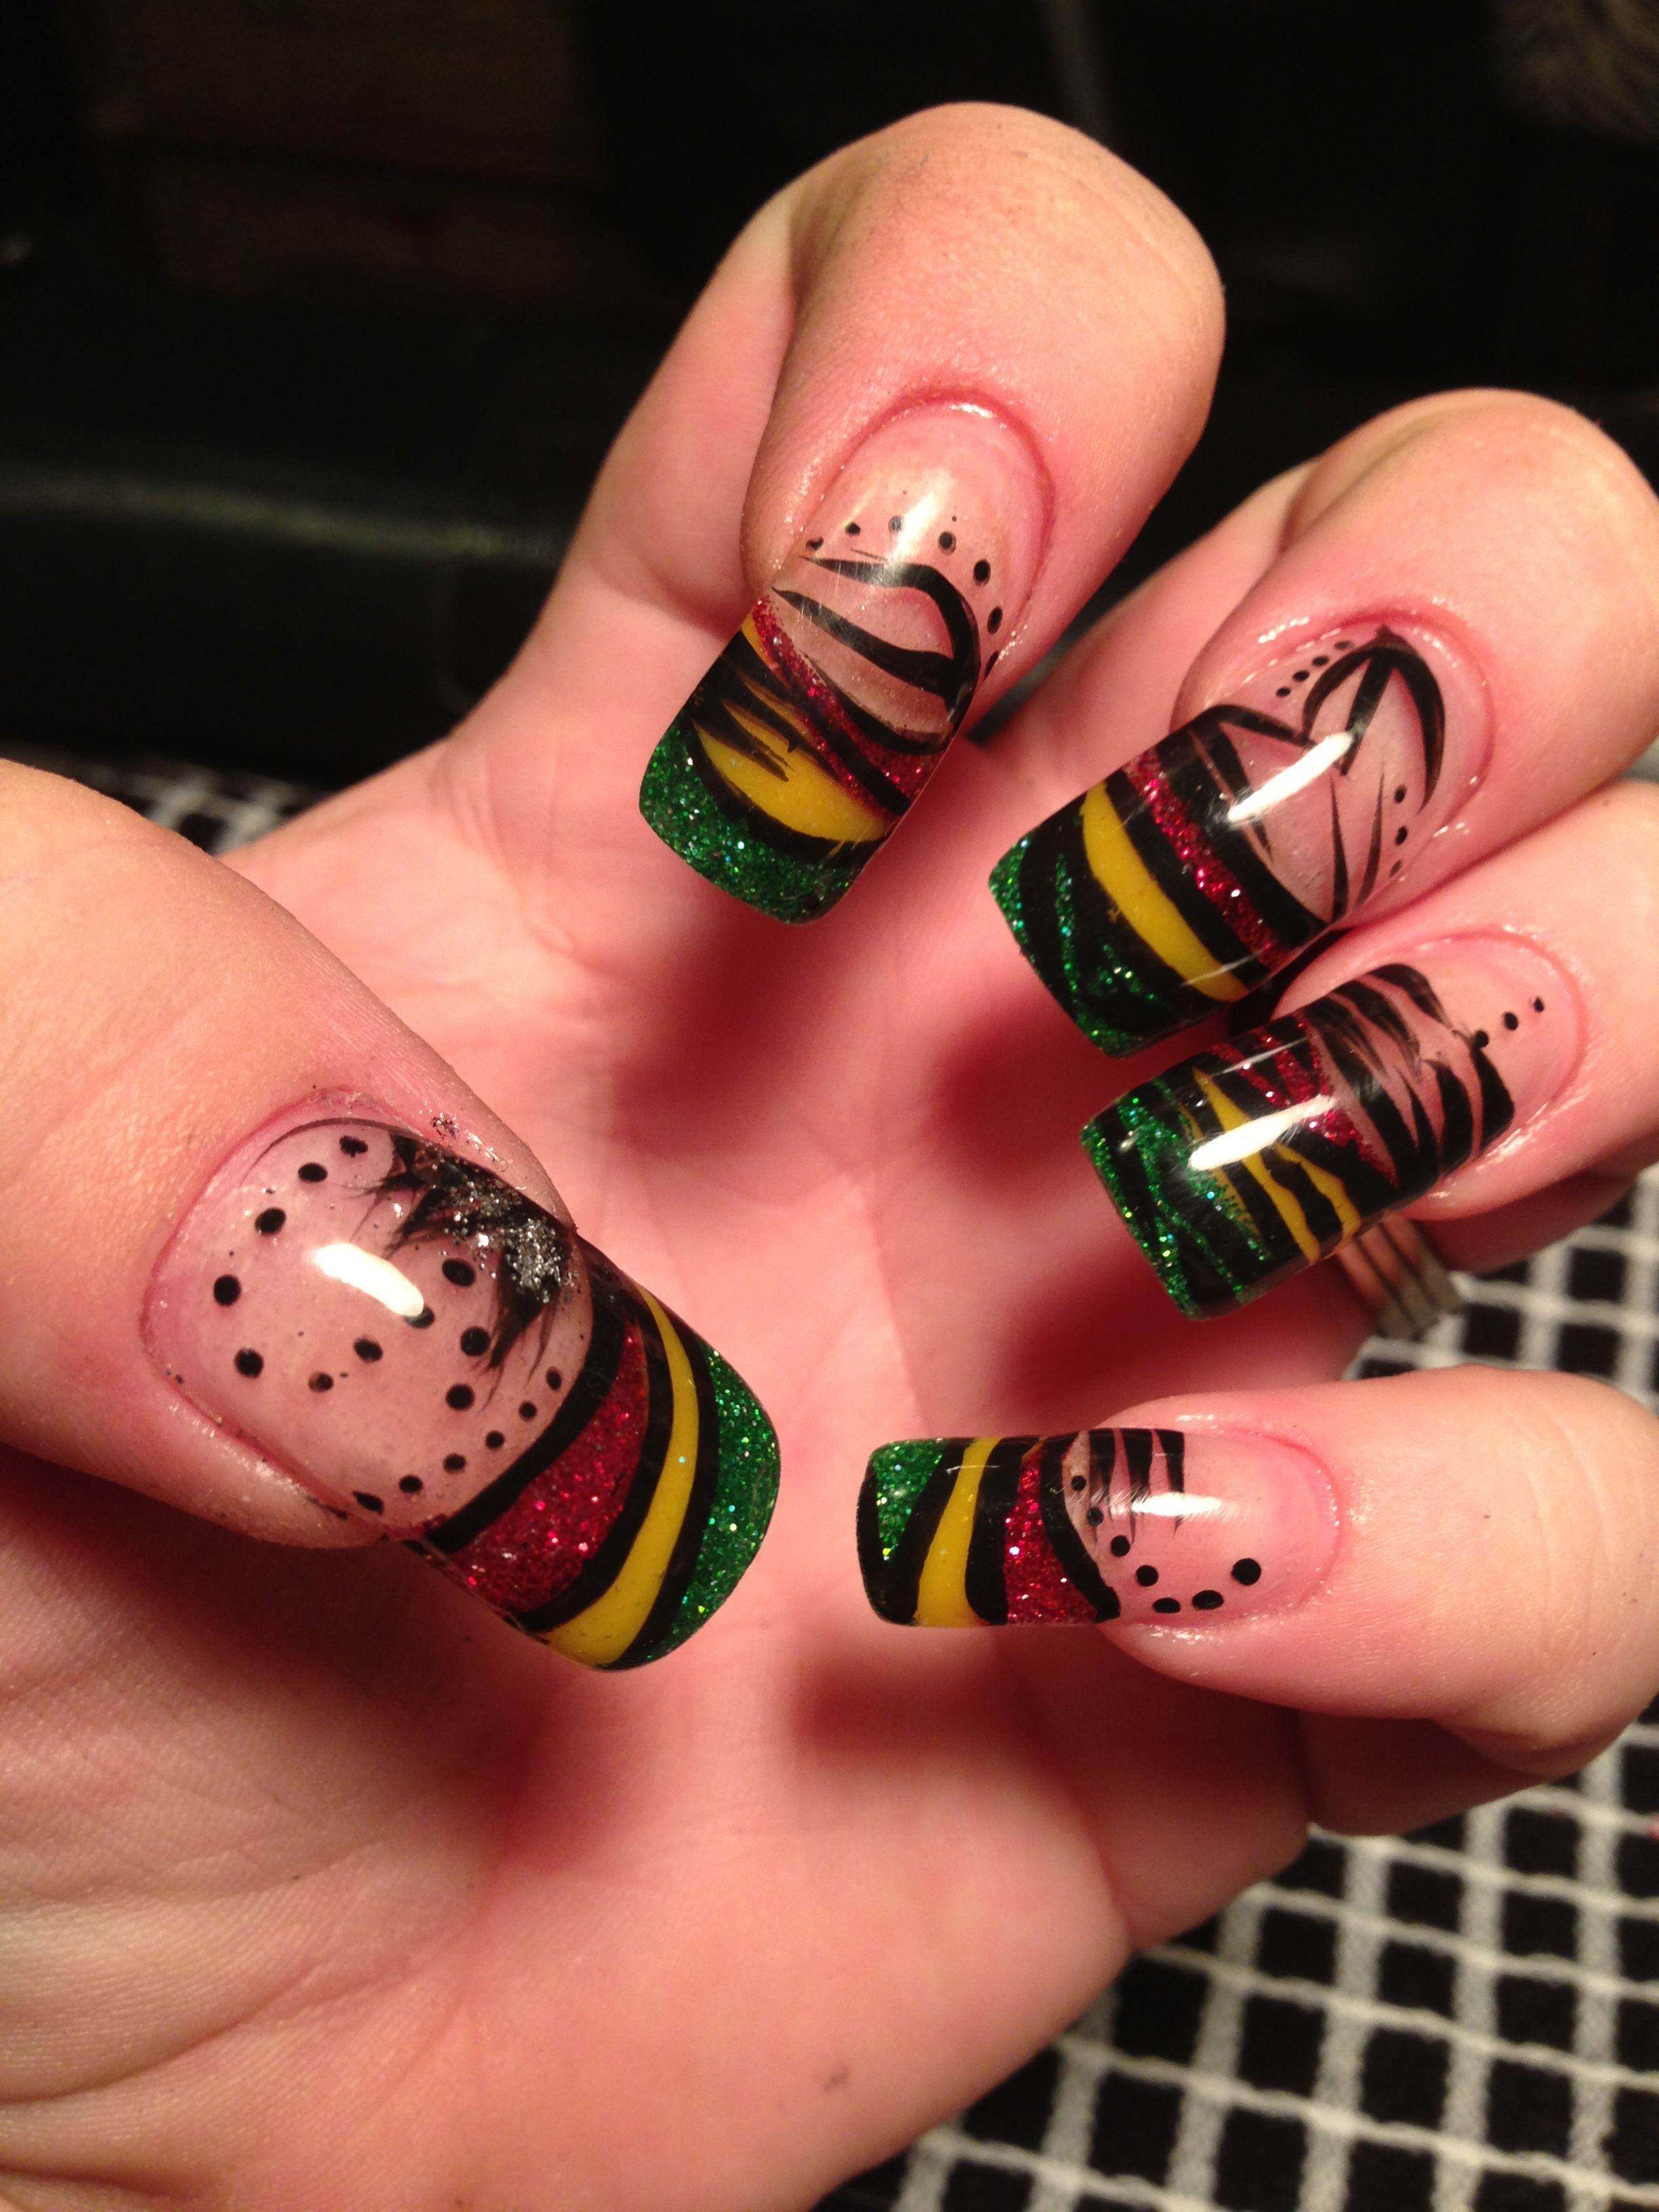 My Rasta Nails with hand painted nail art design | FEELIN IRIE ...